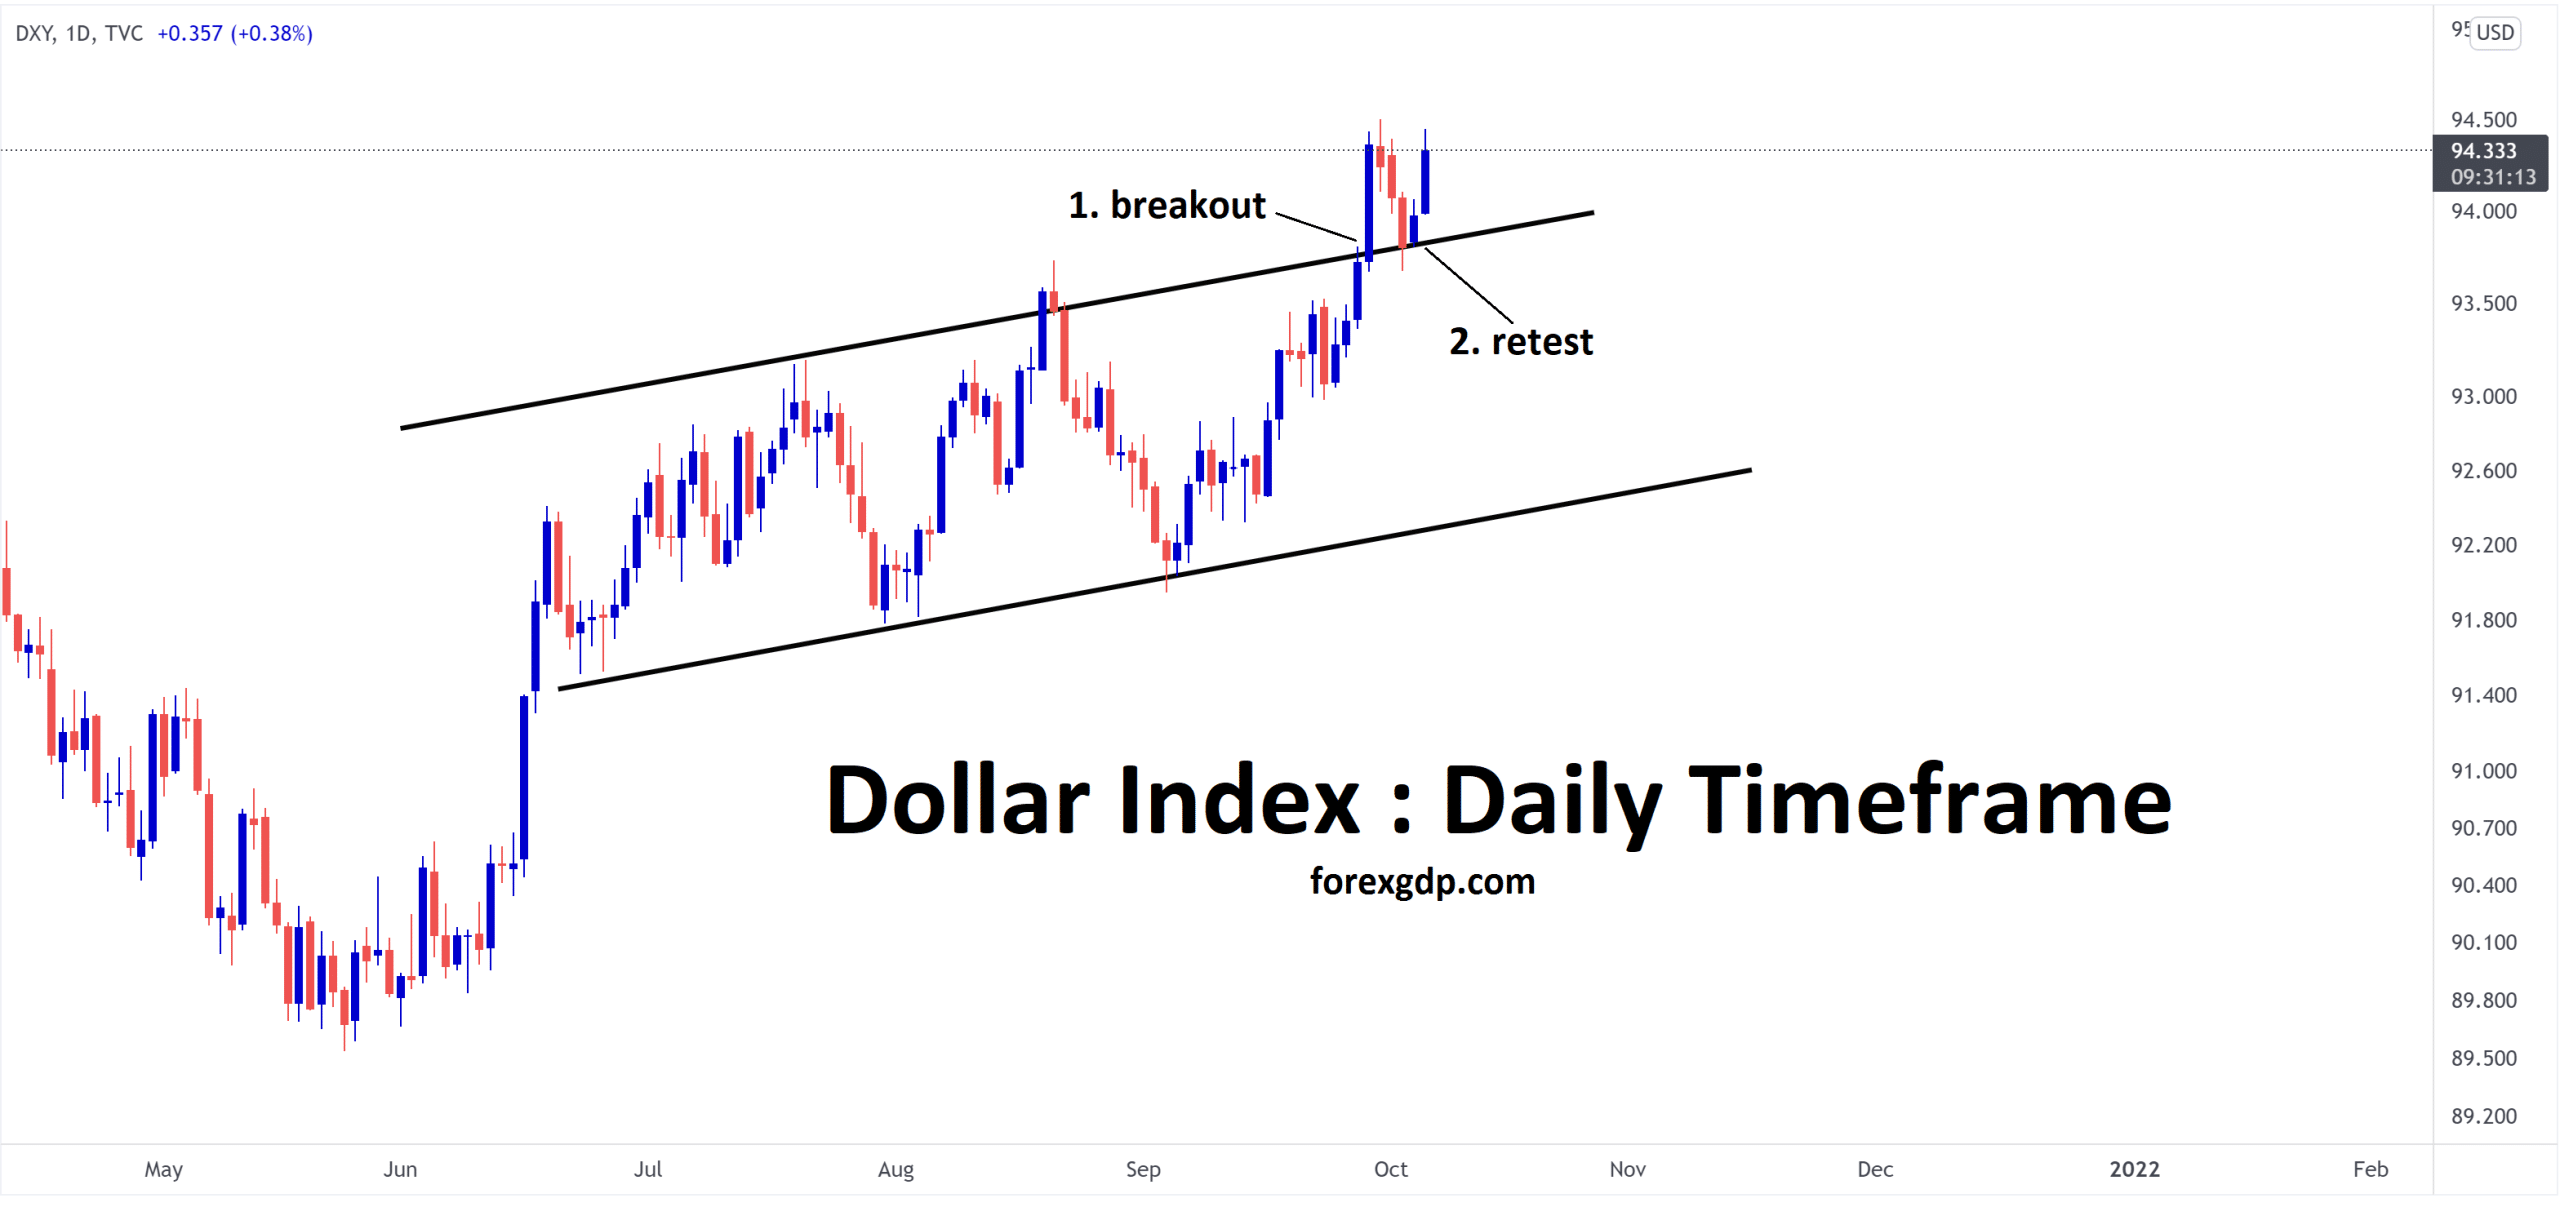 Dollar index price is rising now after retesting the broken ascending channel line